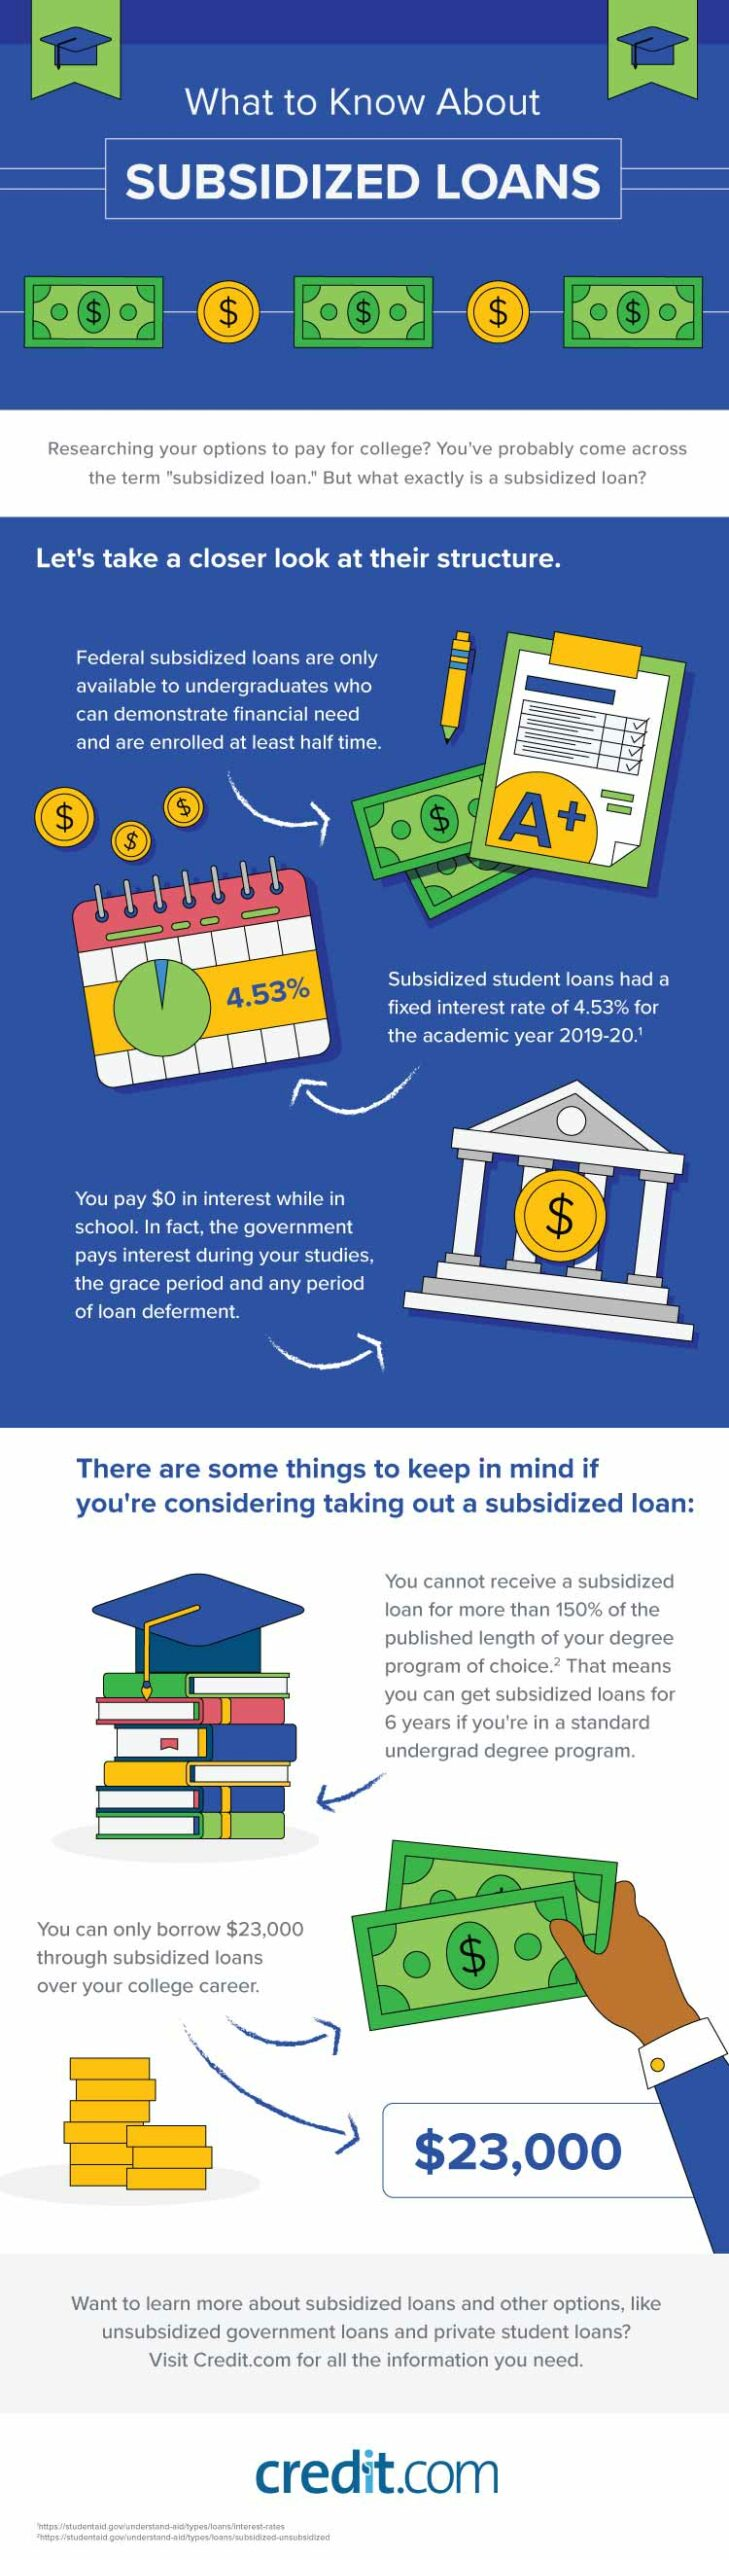 Infographic outlining what to know about subsidized loans, including their structure, requirements, and qualifications.